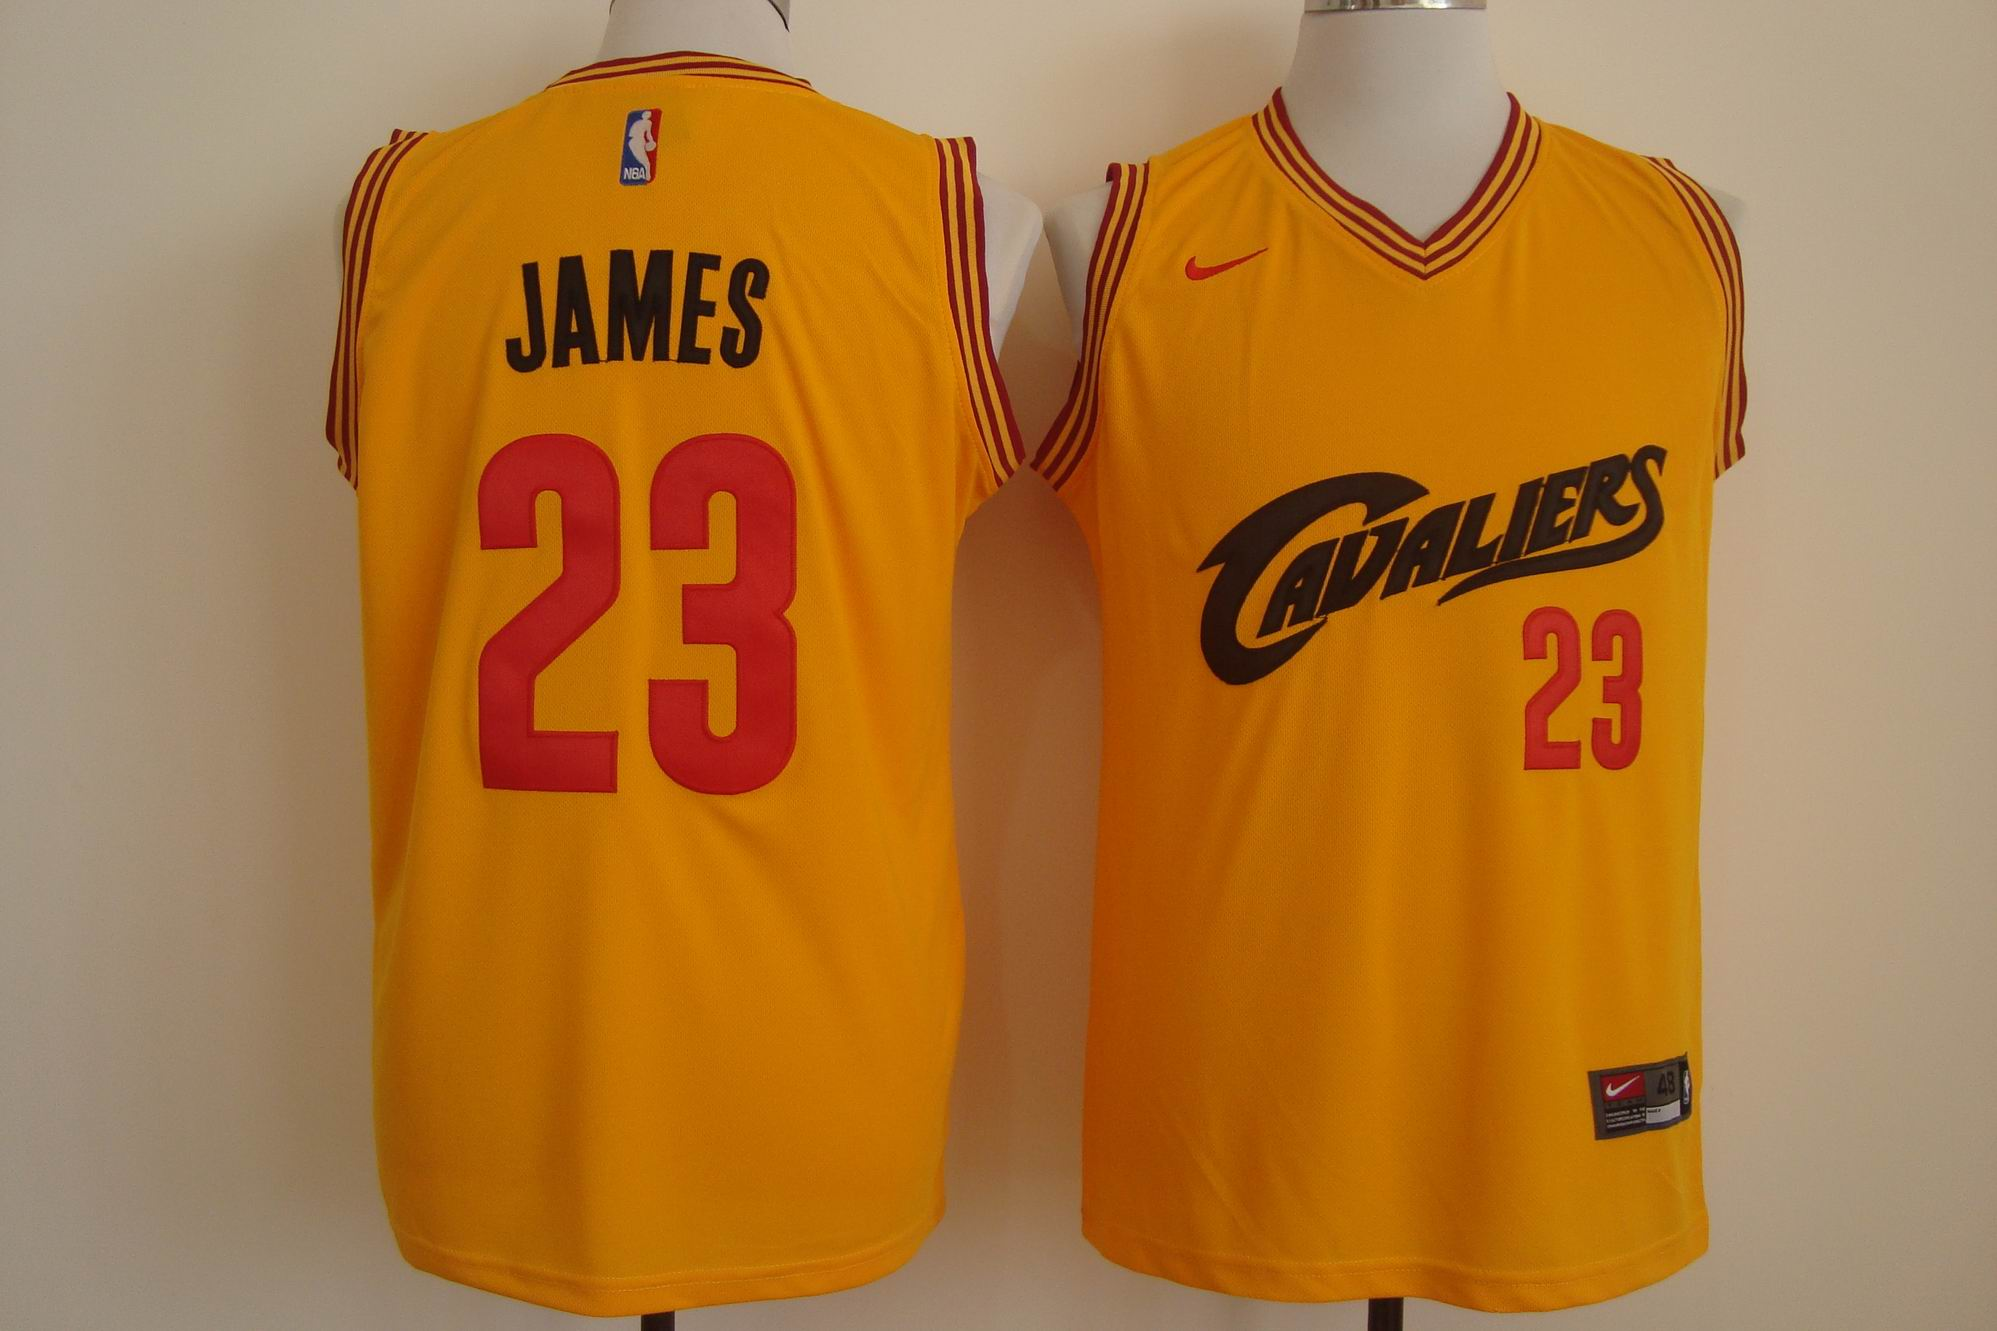 Men's Nike Cleveland Cavaliers #23 LeBron James Yellow and Red Stitched NBA Jersey